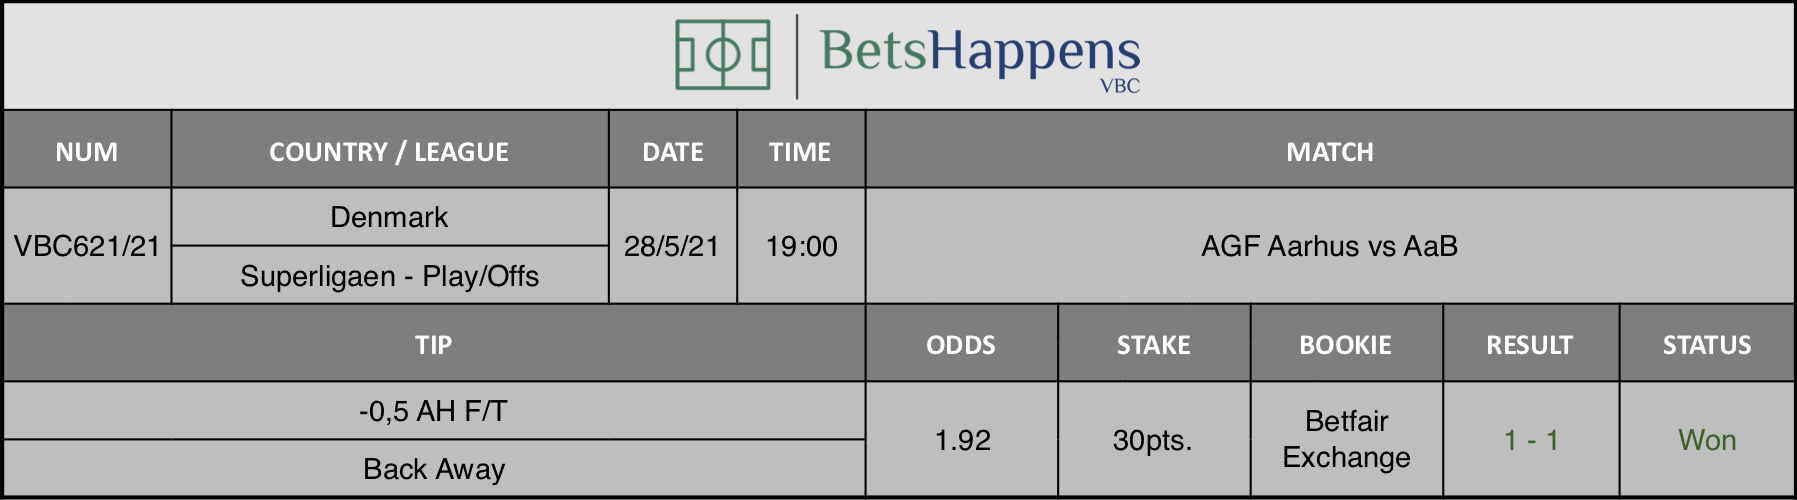 Results of our tip for the AGF Aarhus vs AaB match where -0,5 AH F/T Back Away is recommended.